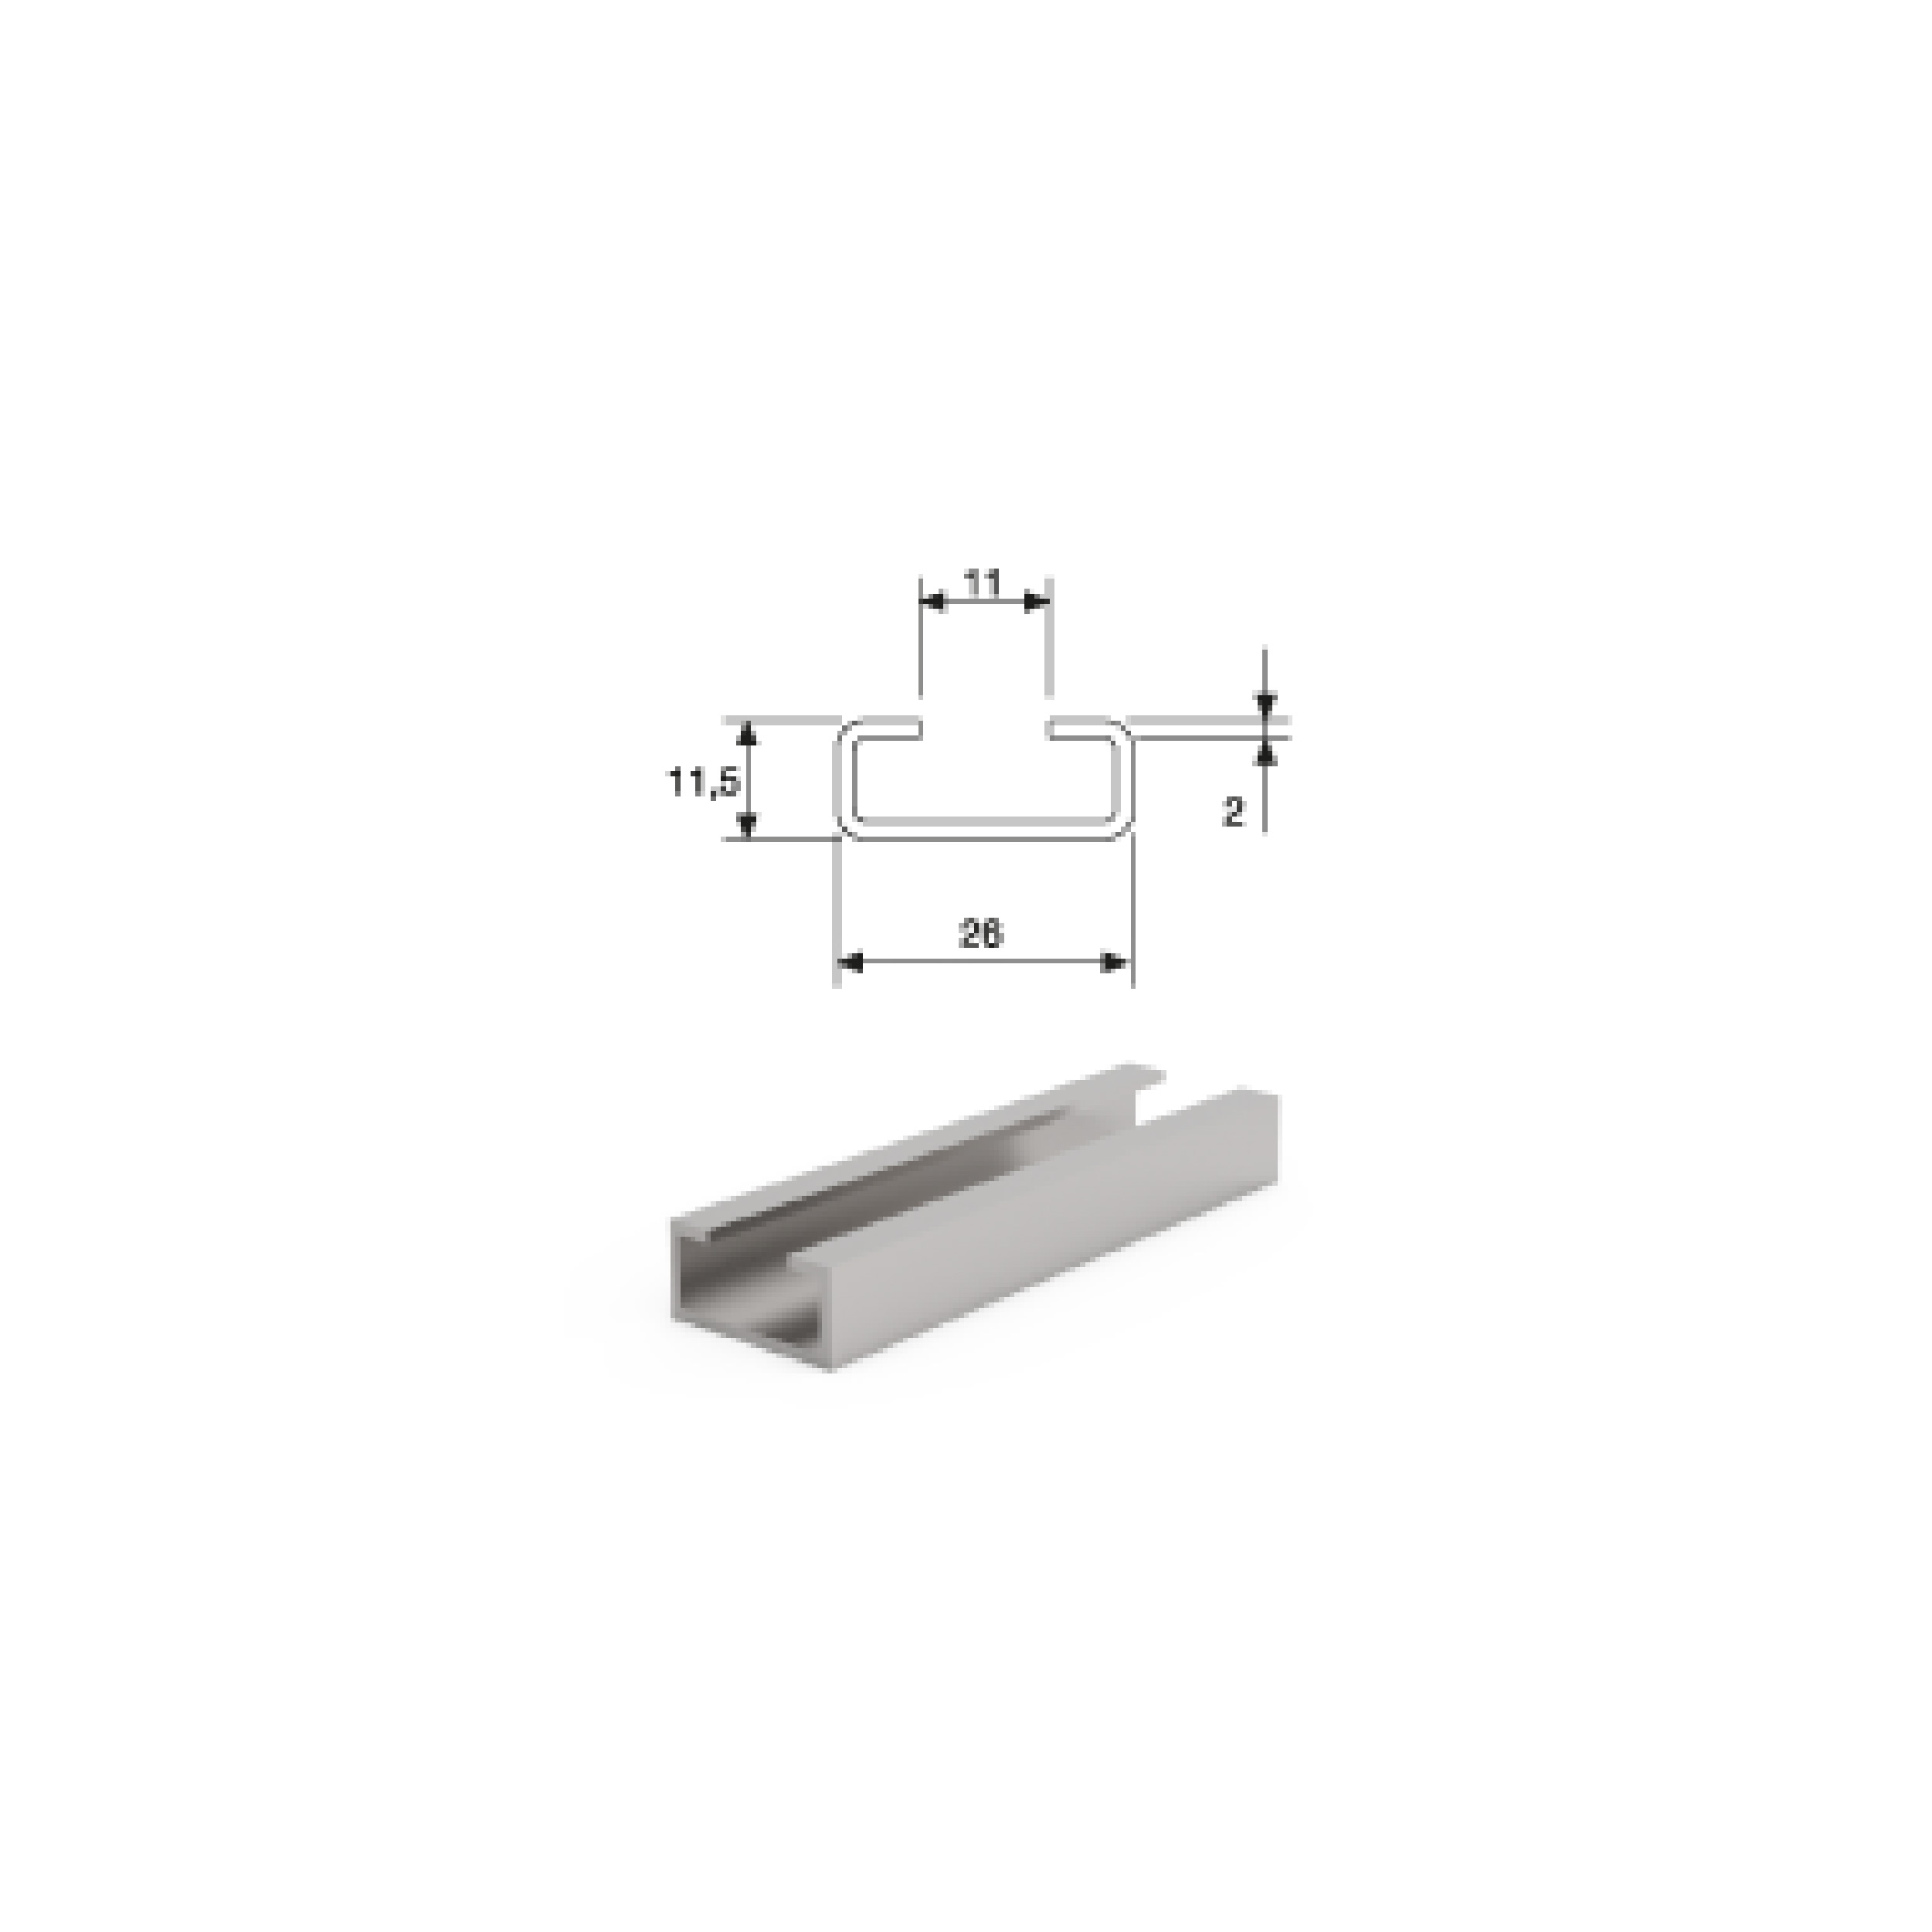 Steel Cable Clamps/Steel Mounting Profile